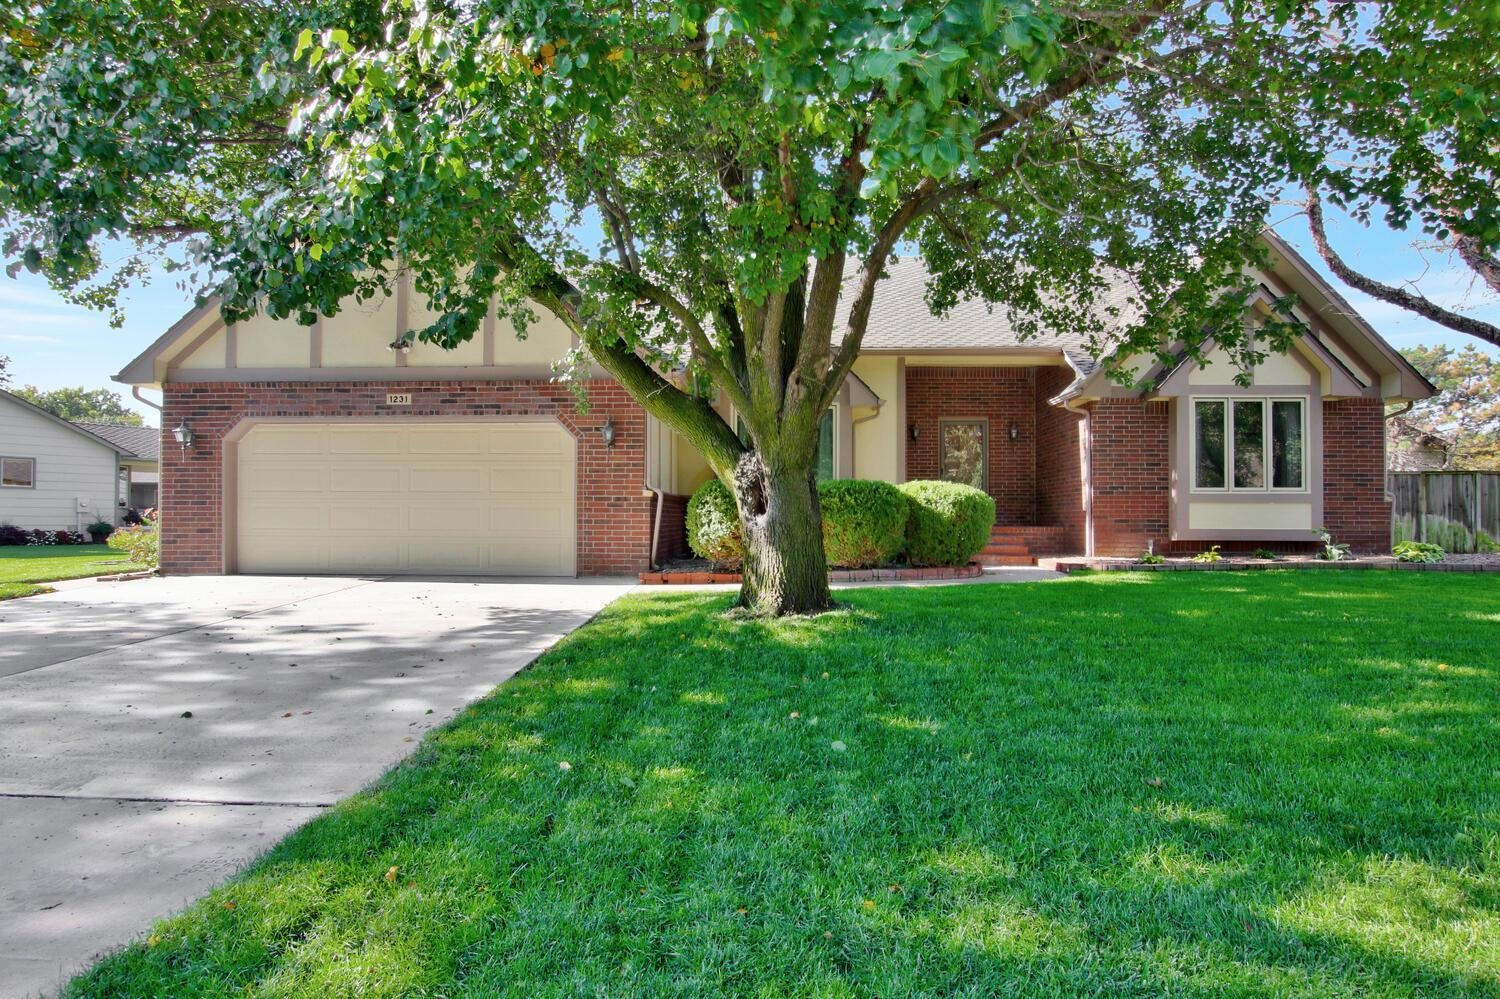 Very well maintained, conveniently located near 13th St and Maize Rd. Only minutes away from all the